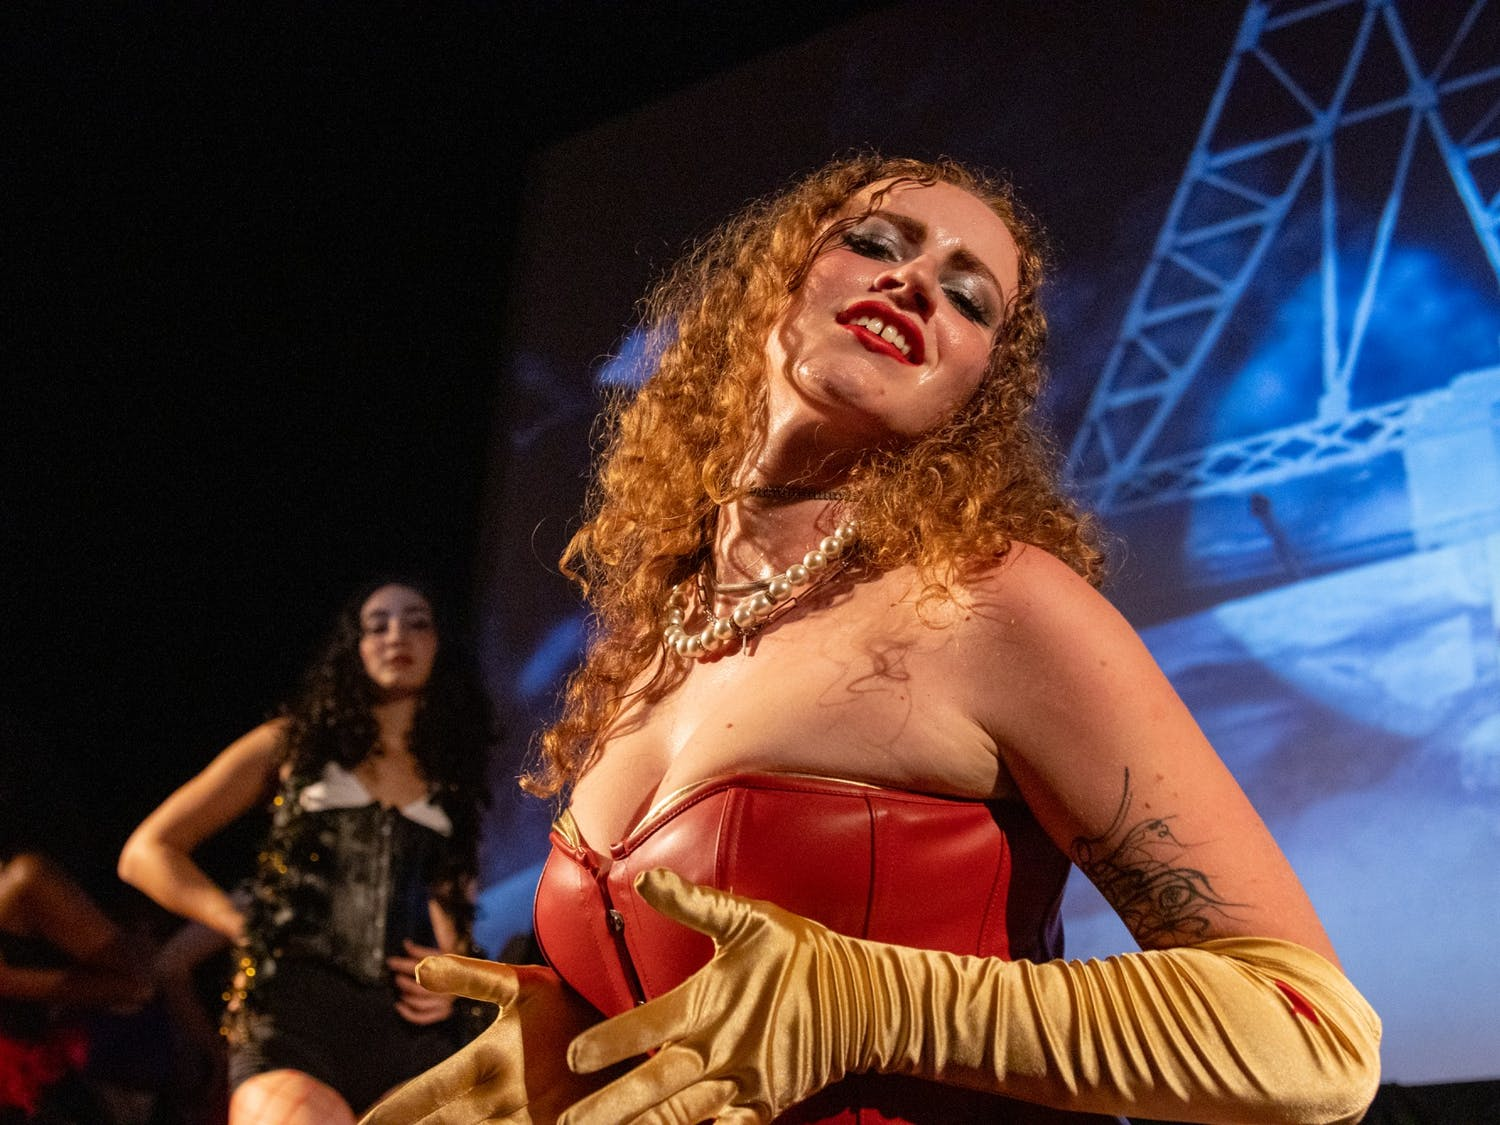 UNC senior Olivia Sullivan portrays Dr. Frank-N-Furter during the final scene of an Oct. 26 technical rehearsal of the Rocky Horror Picture Show at the Varsity Theatre. The production is an annual tradition of the UNC Pauper Players.